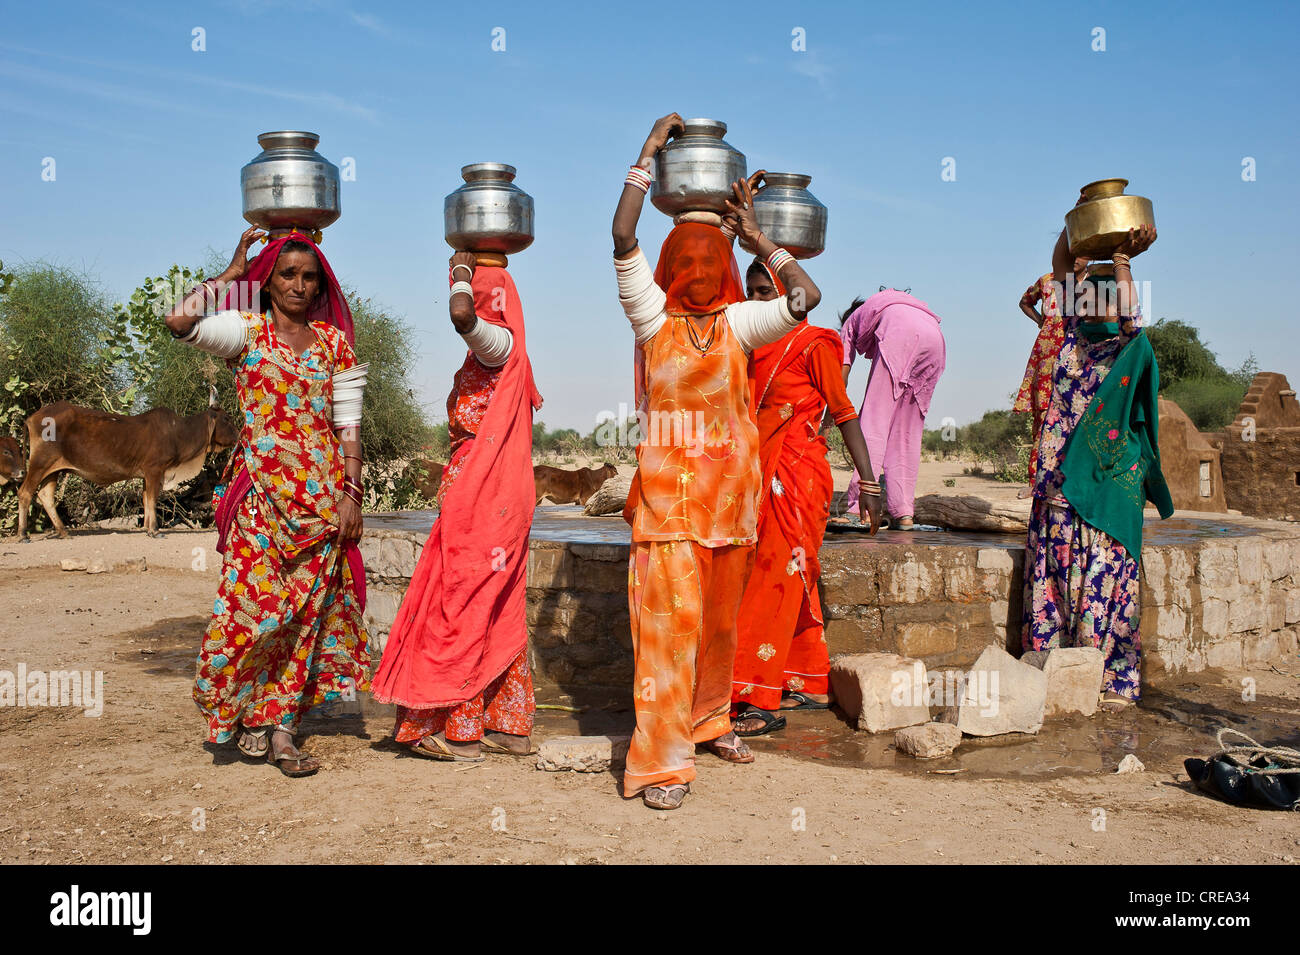 Indian women wearing saris carrying water jugs on their heads, they ...